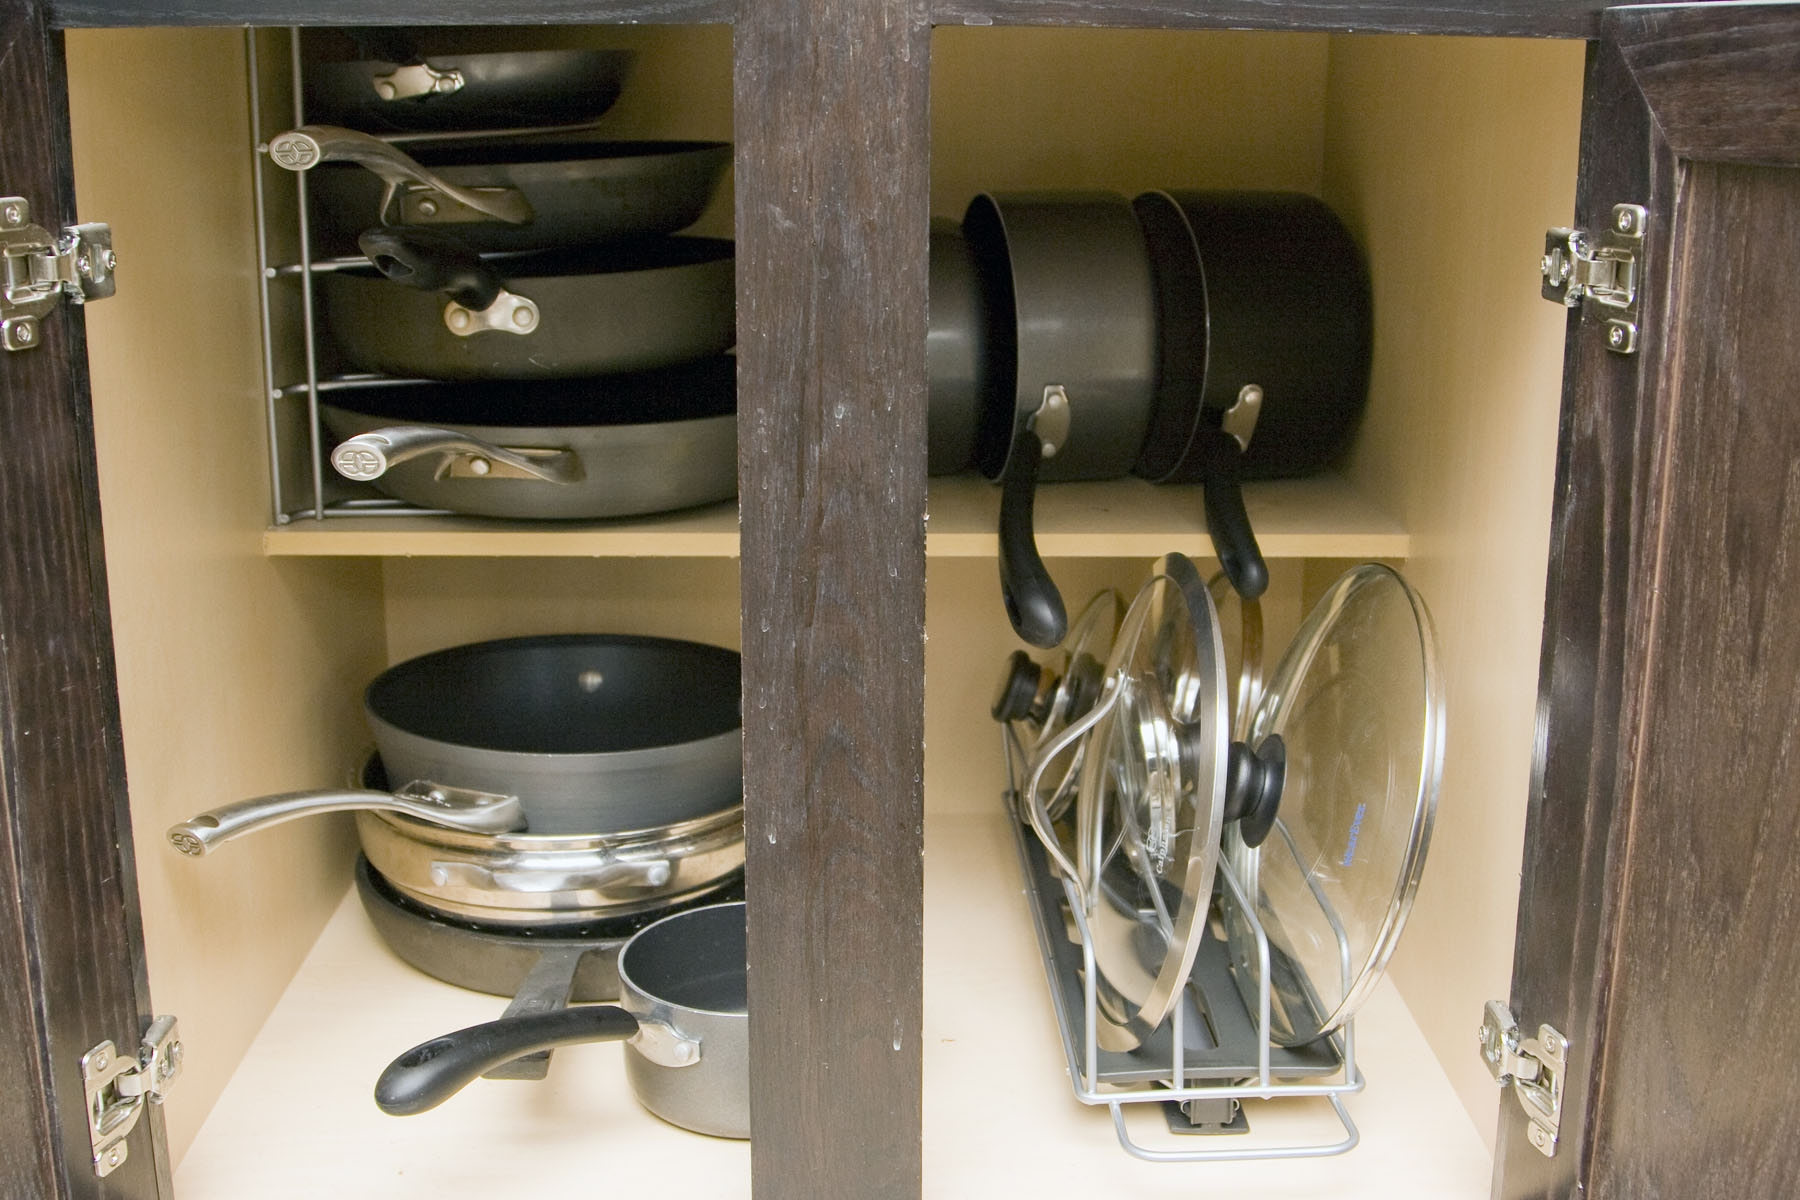 Cabinet Storage For Pots And Pans